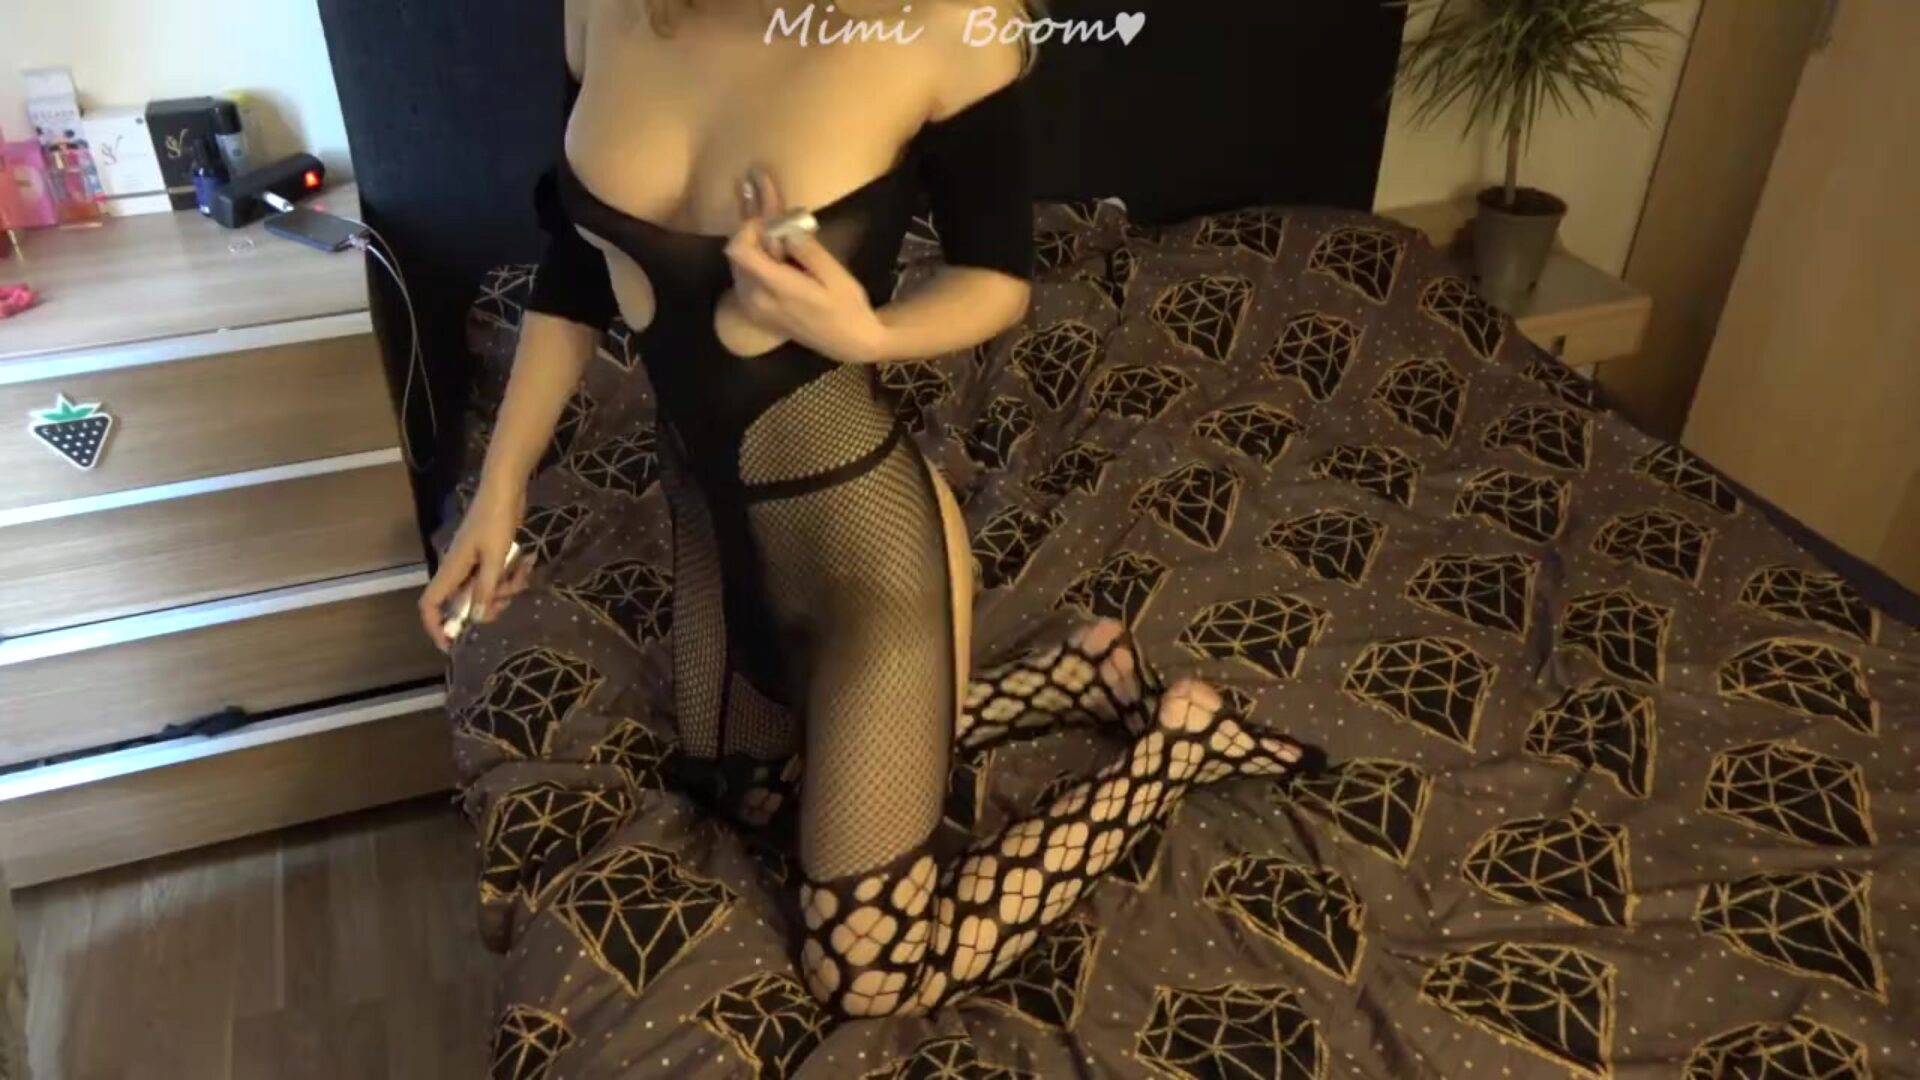 Teasing,Sucking and Edging Big Dick previous to Cumming on my Pussy - Mimi Boom